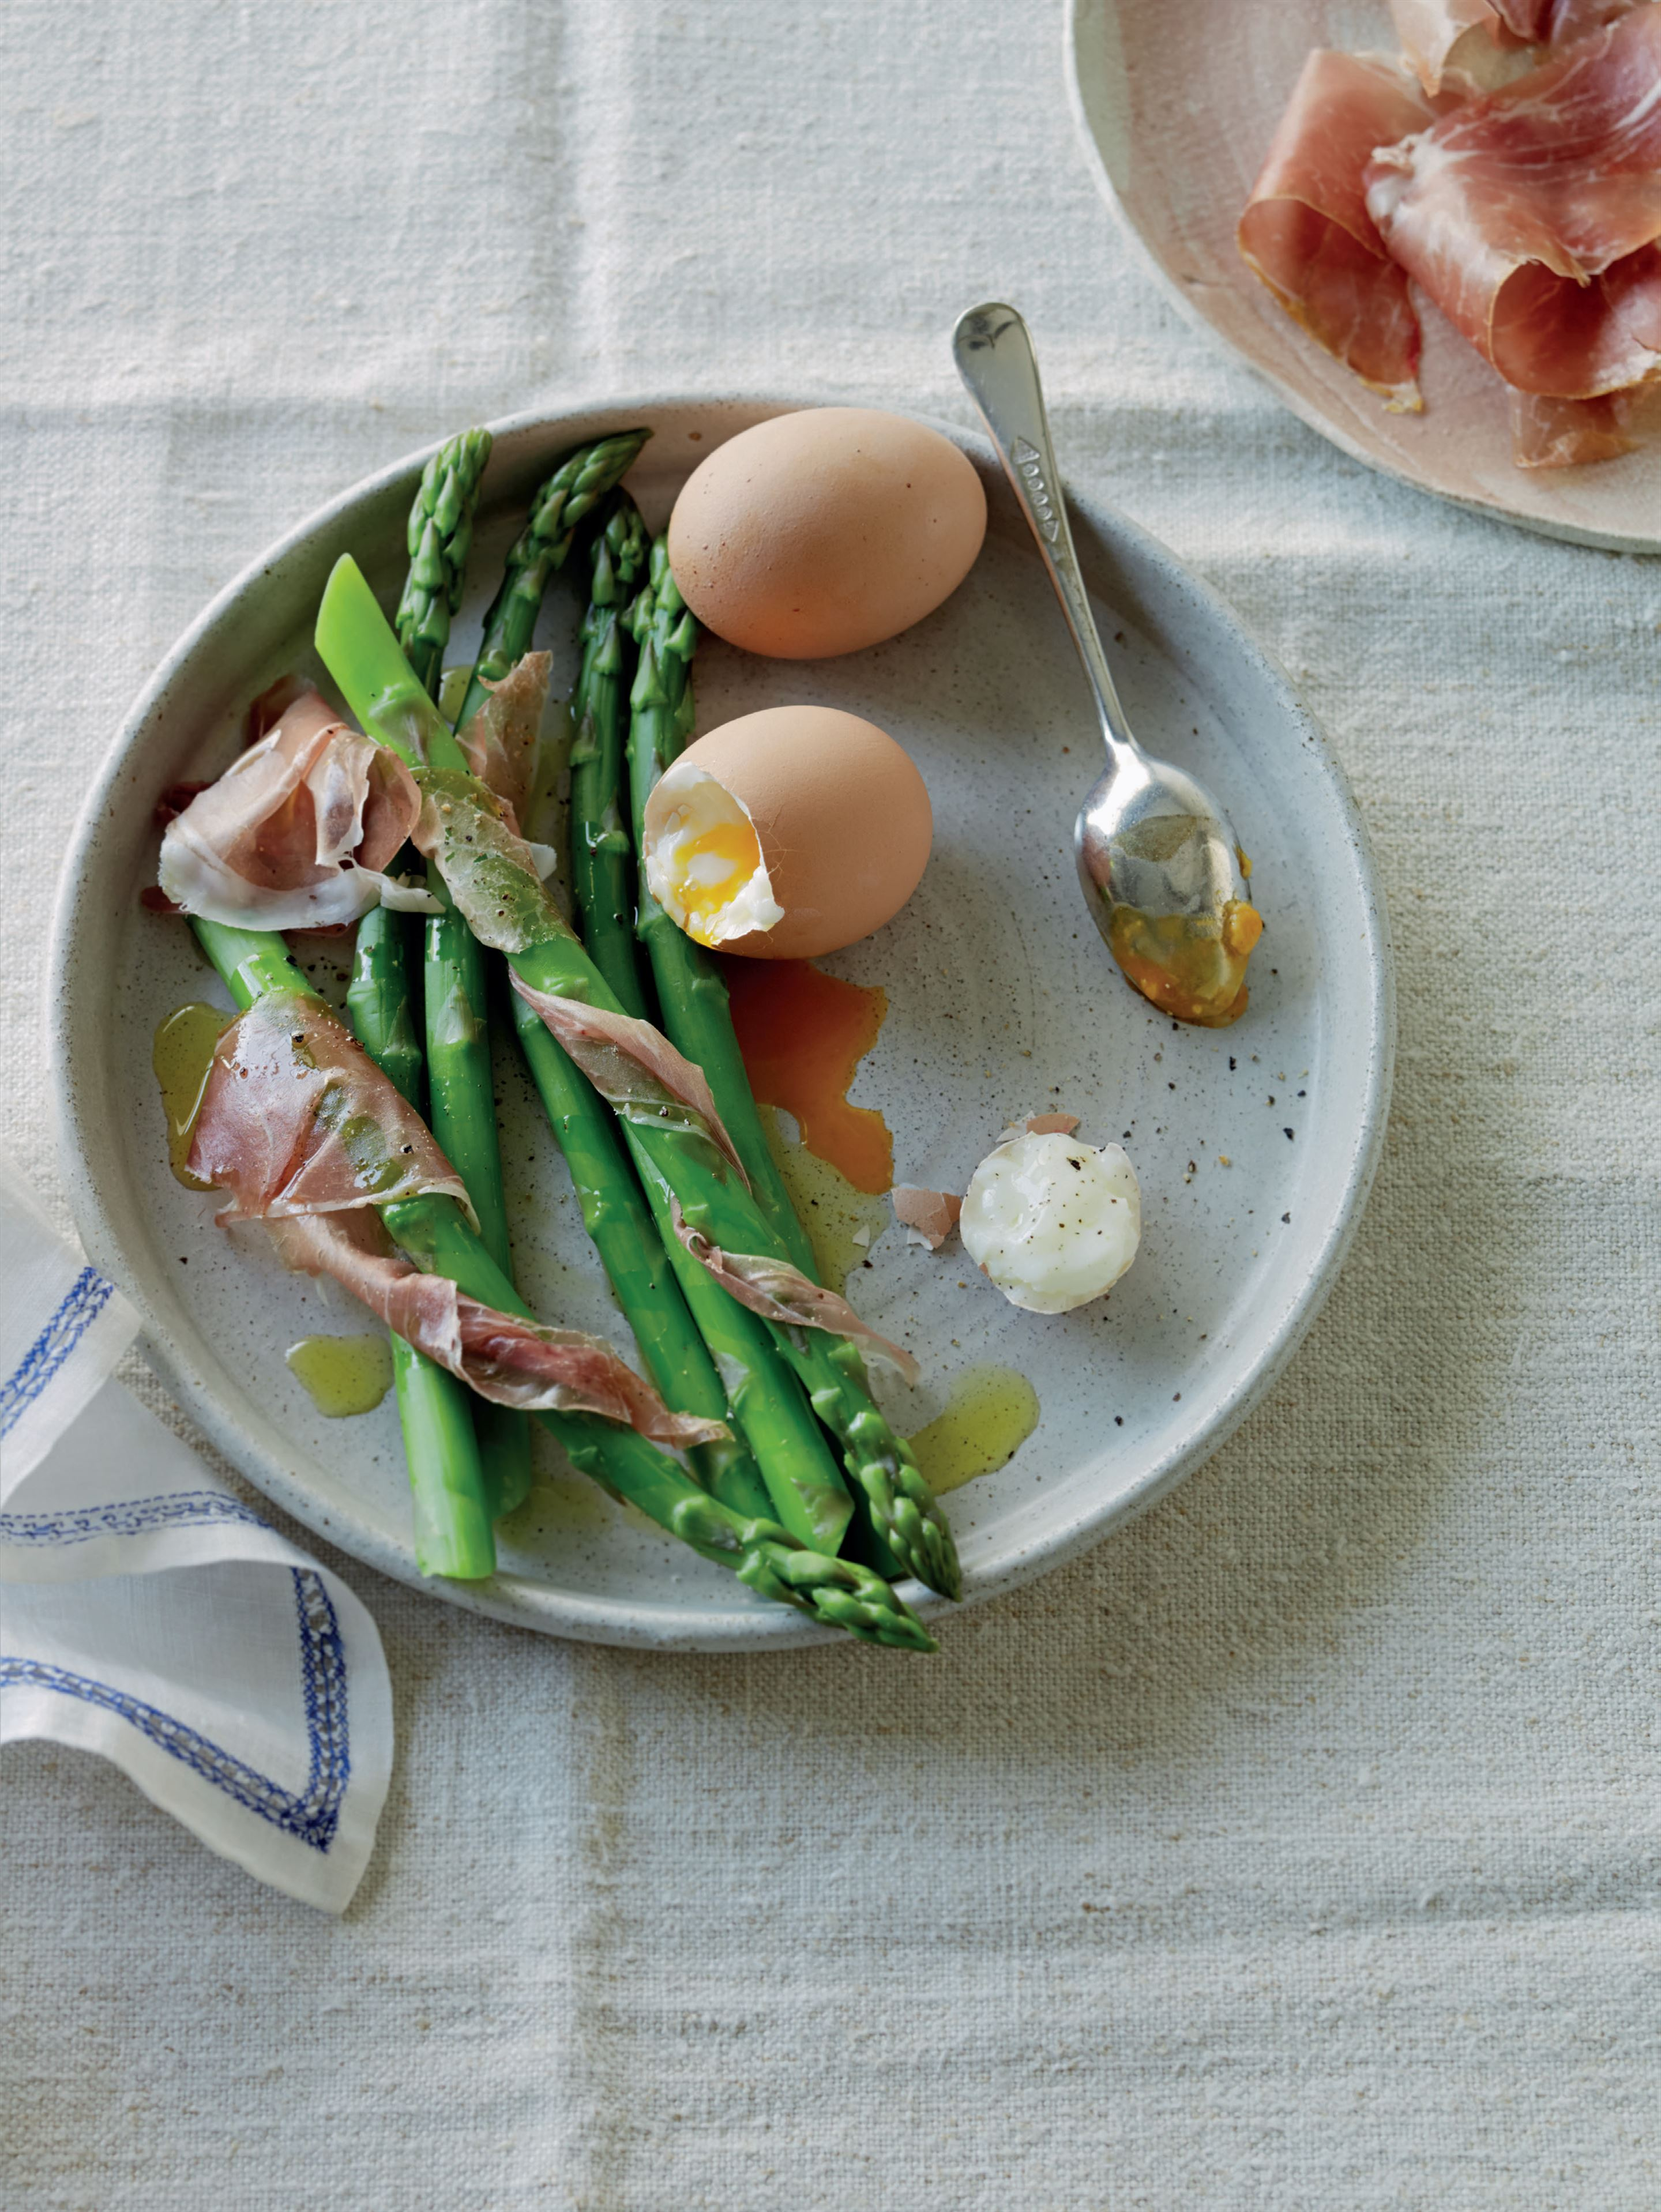 Gooey eggs with asparagus dippers